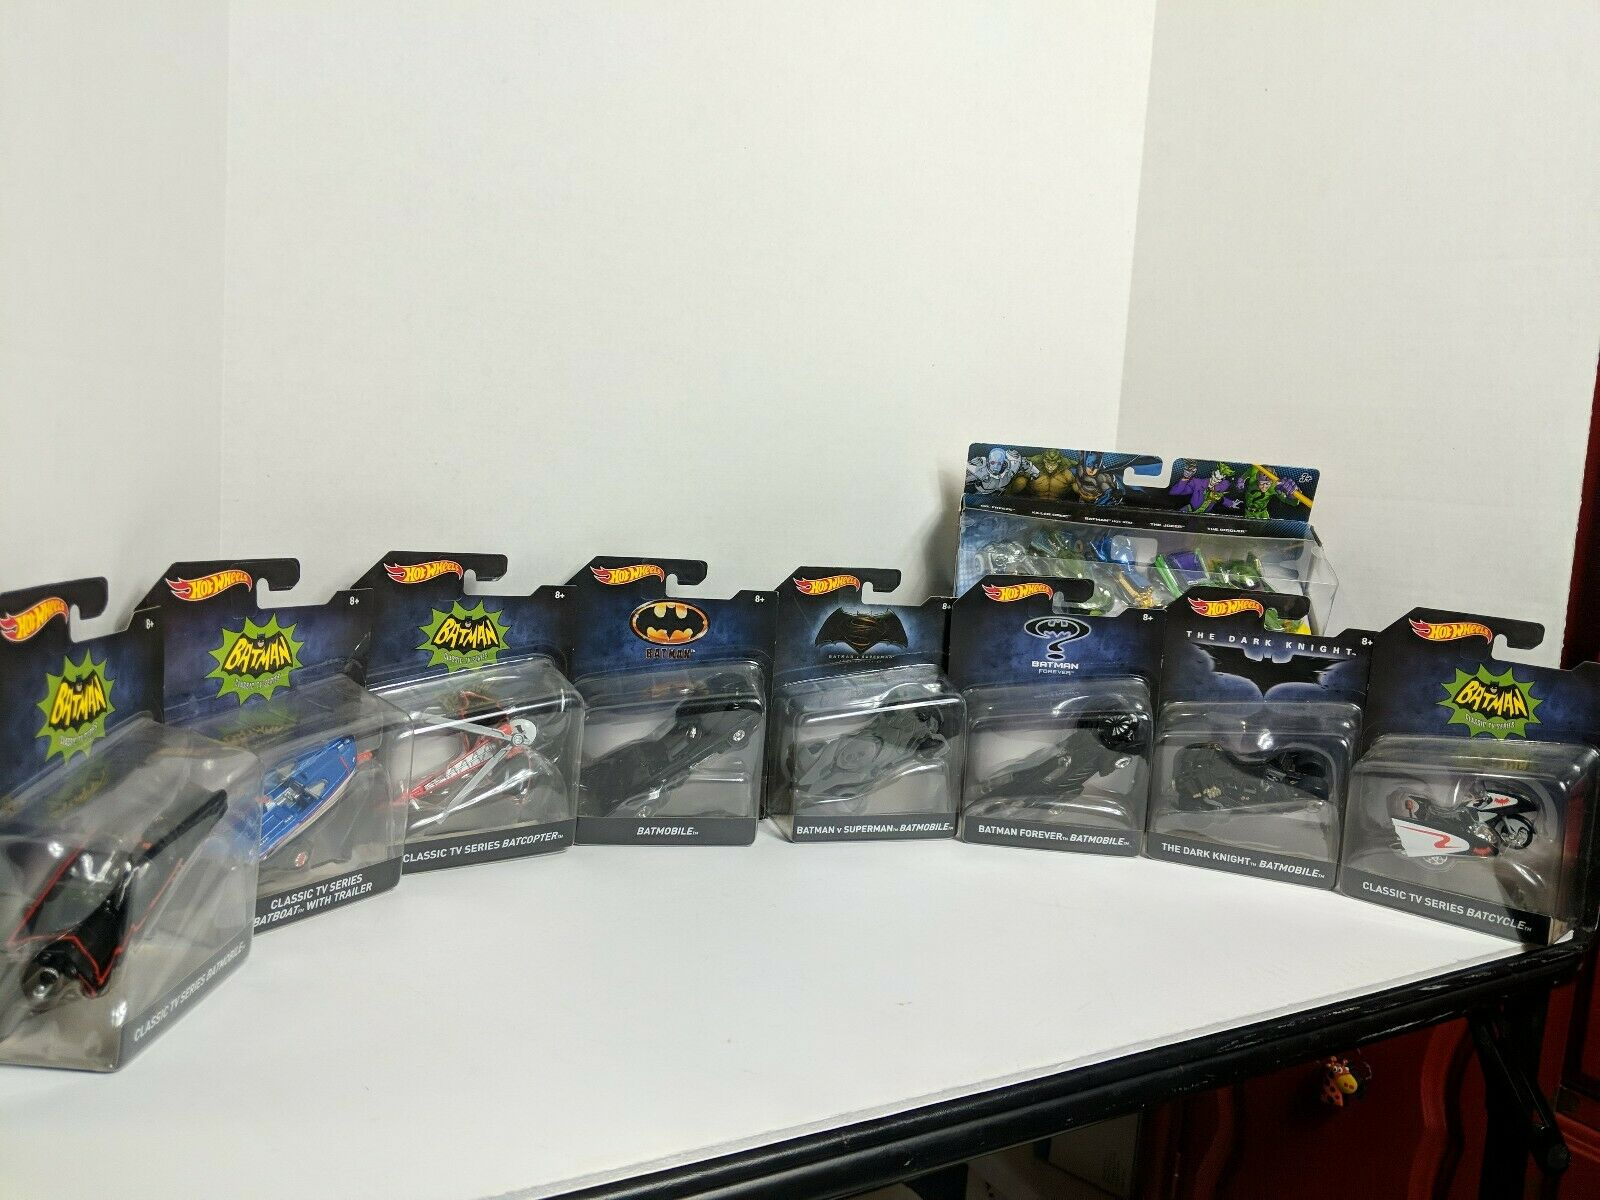 nuovo In Package BATuomo caliente ruedas Set di 8  bouns Pack. BATuomo FOREVER Batmobile, BATMOBILE